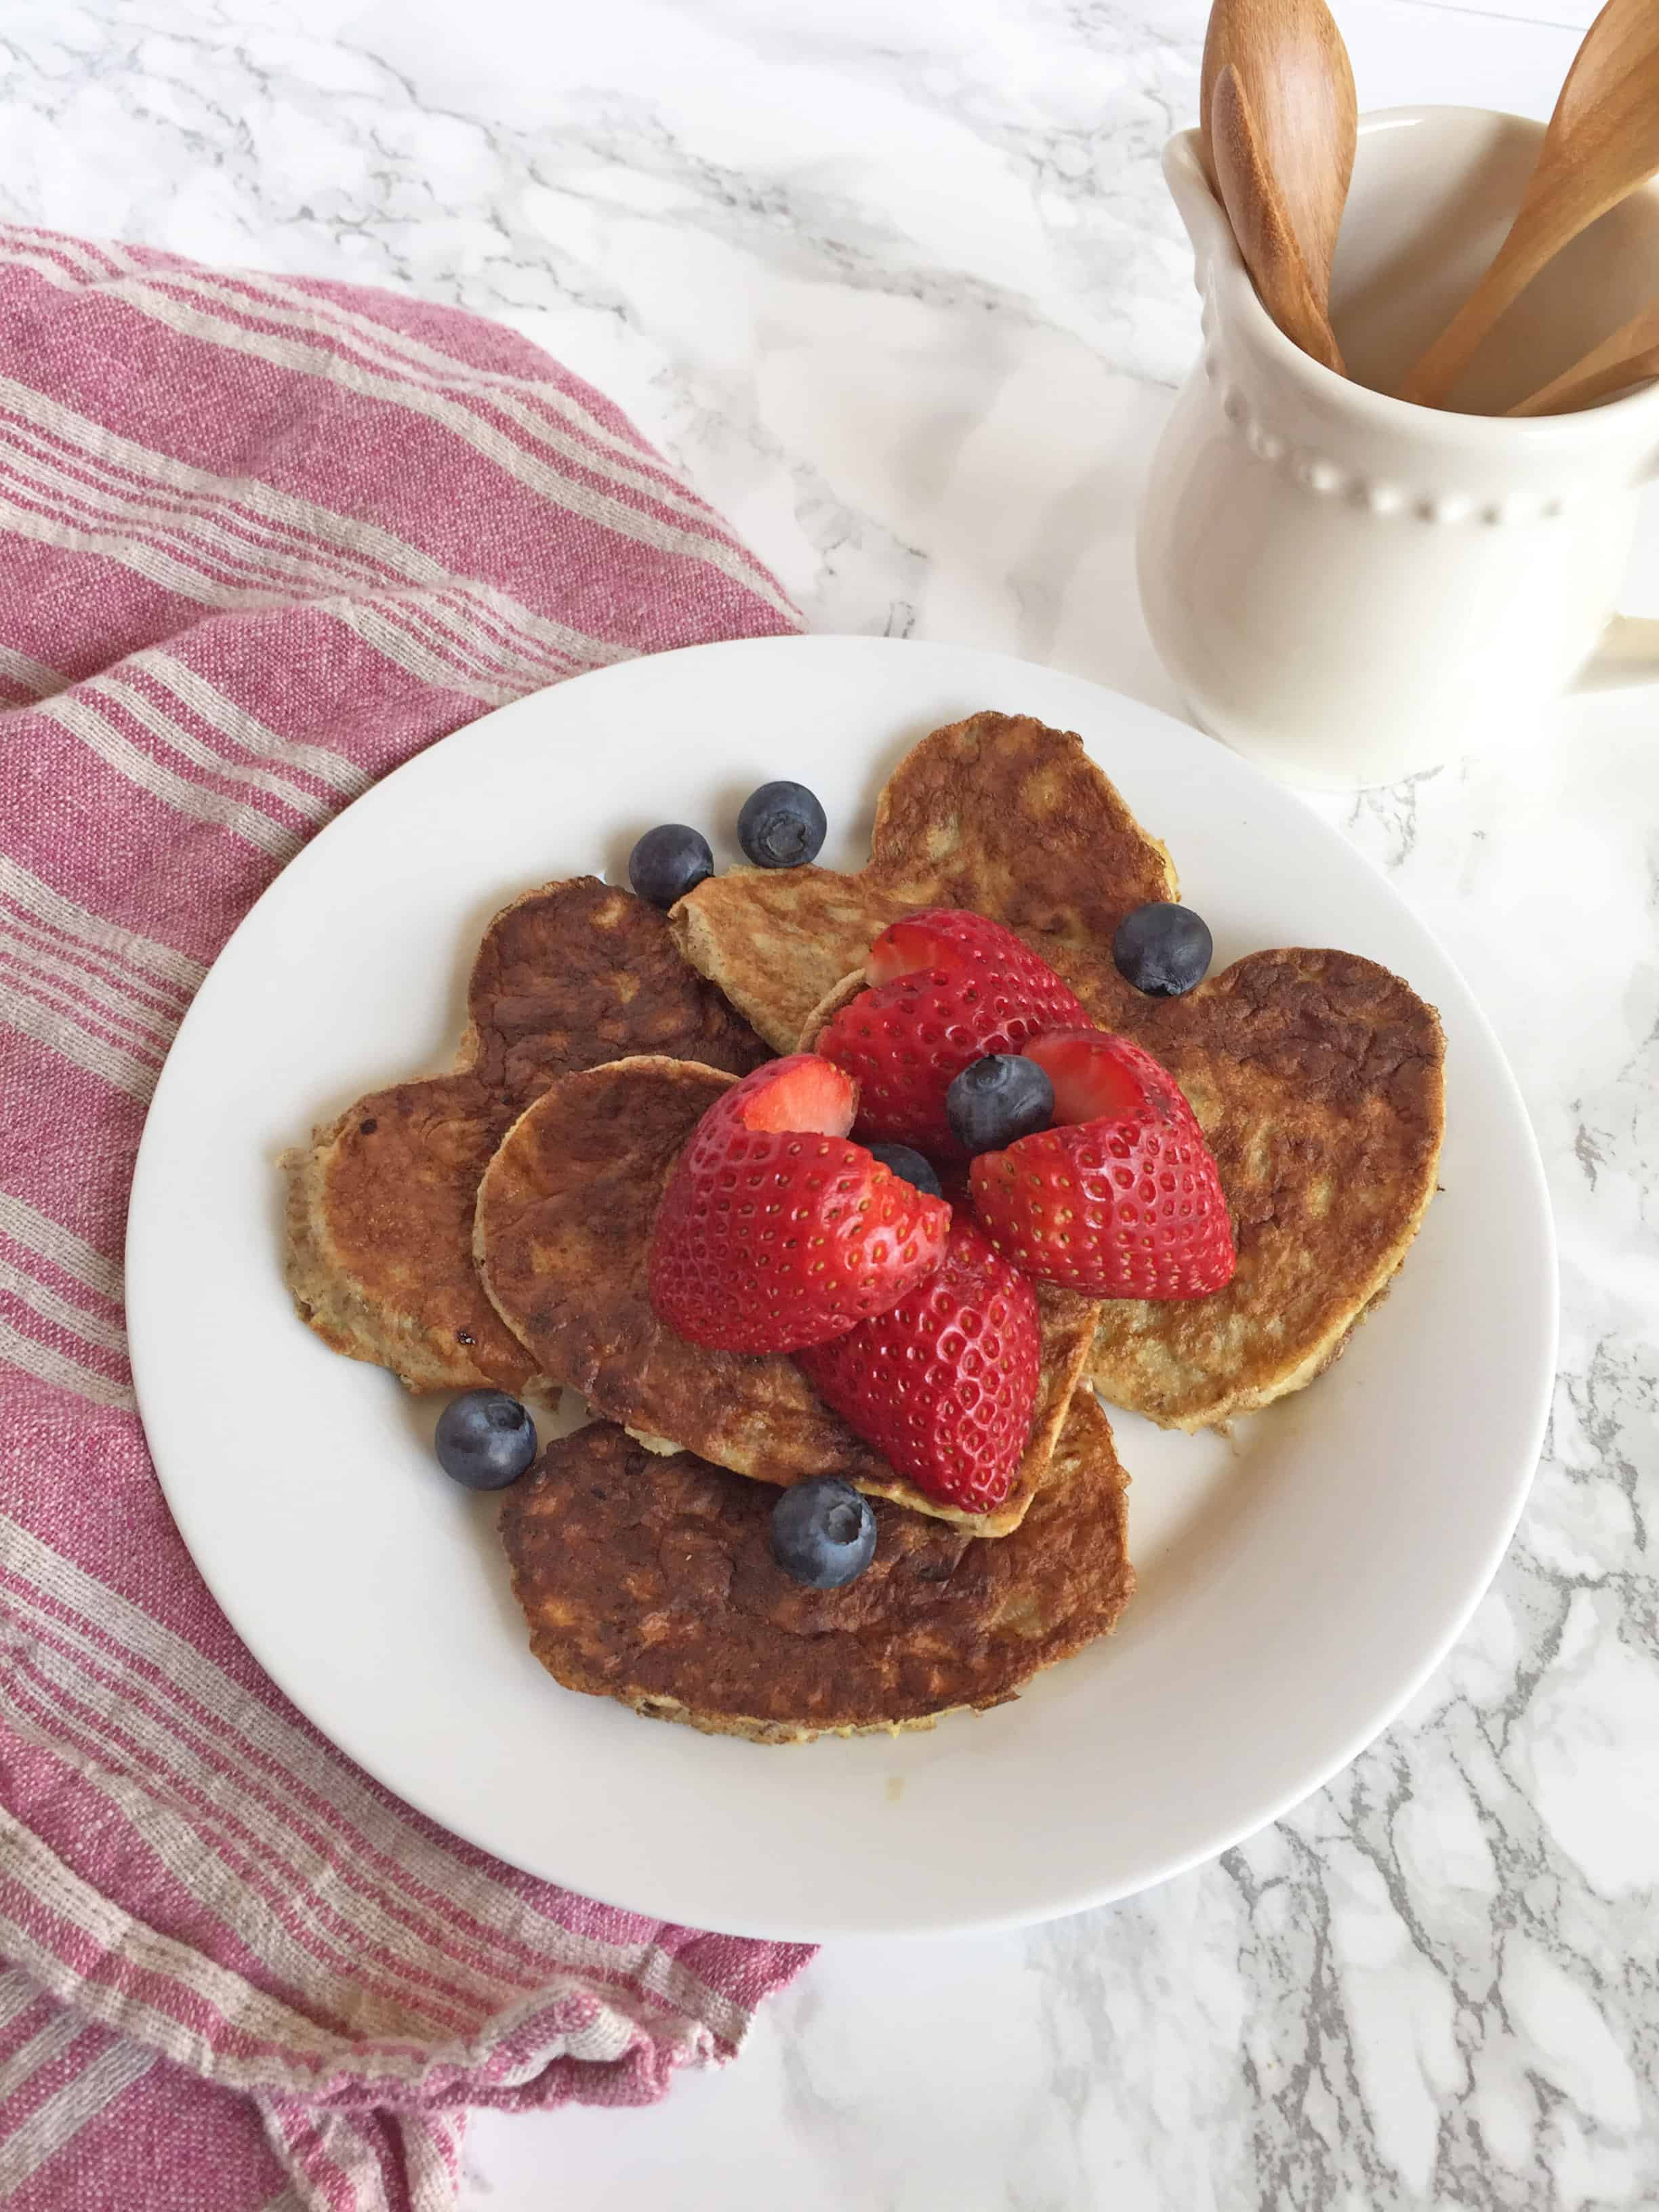 3 ingredient pancakes with strawberries and blueberries.